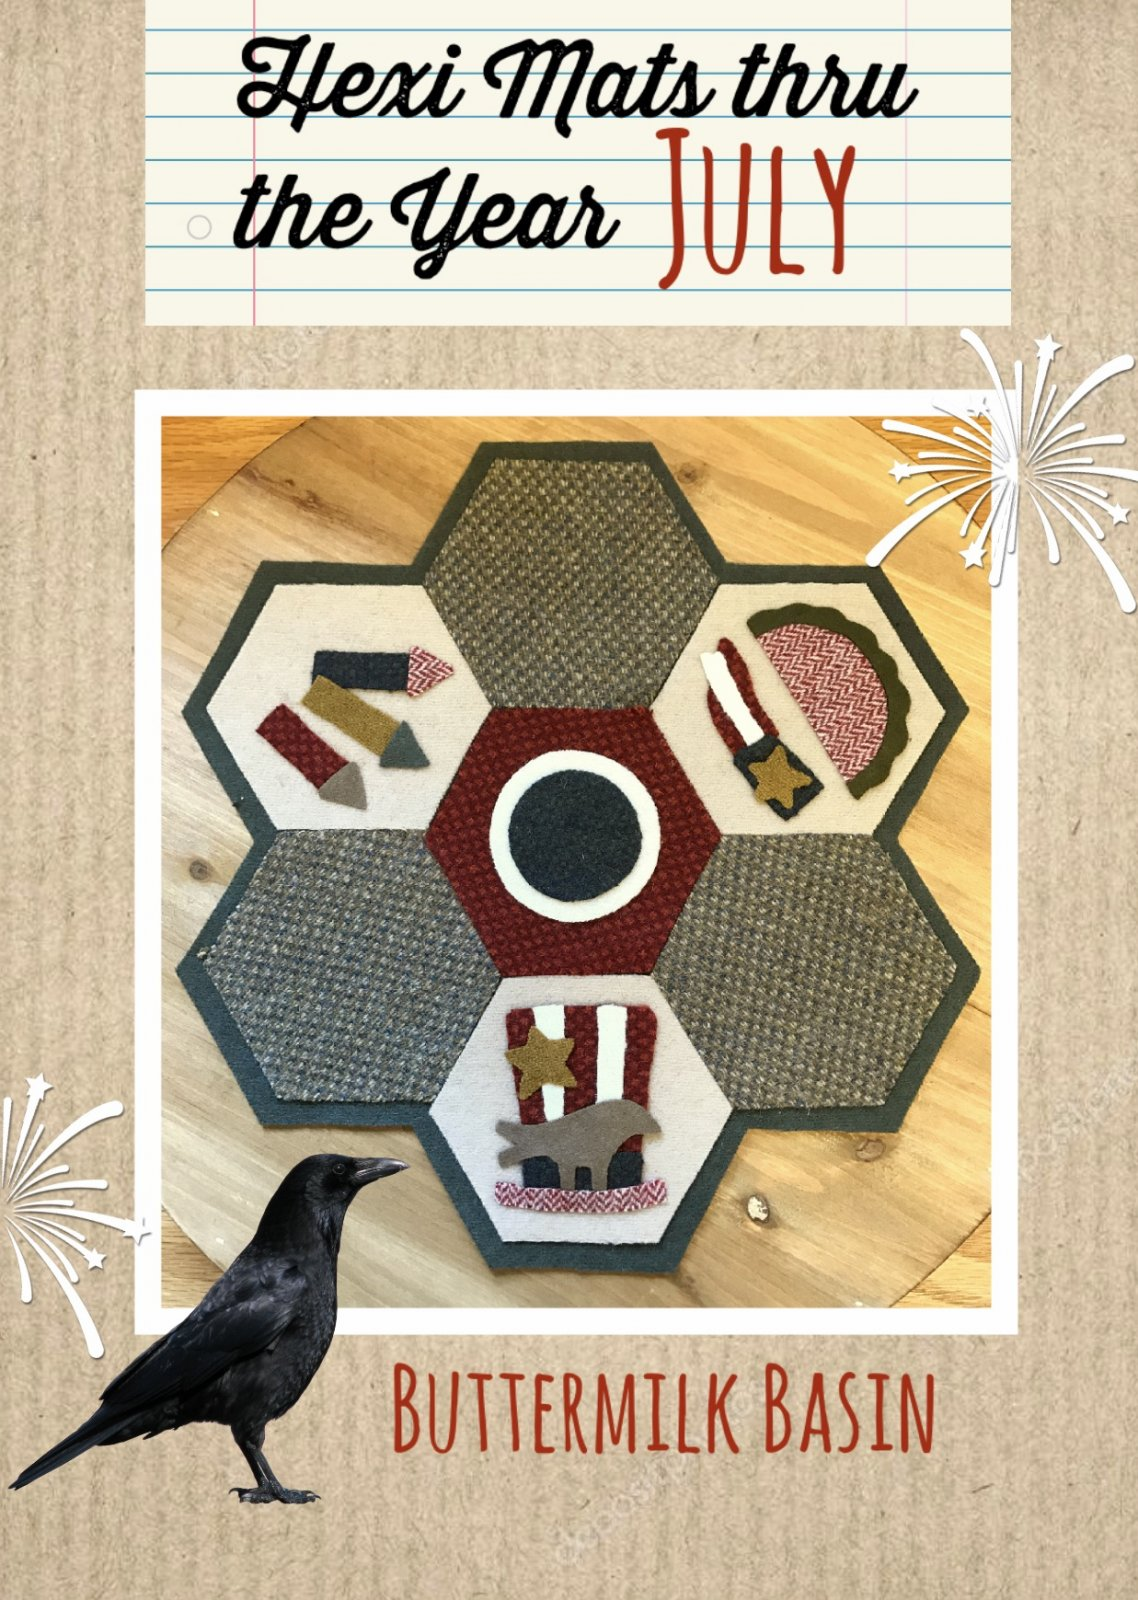 Hexi Mats thru the Year * July Pattern